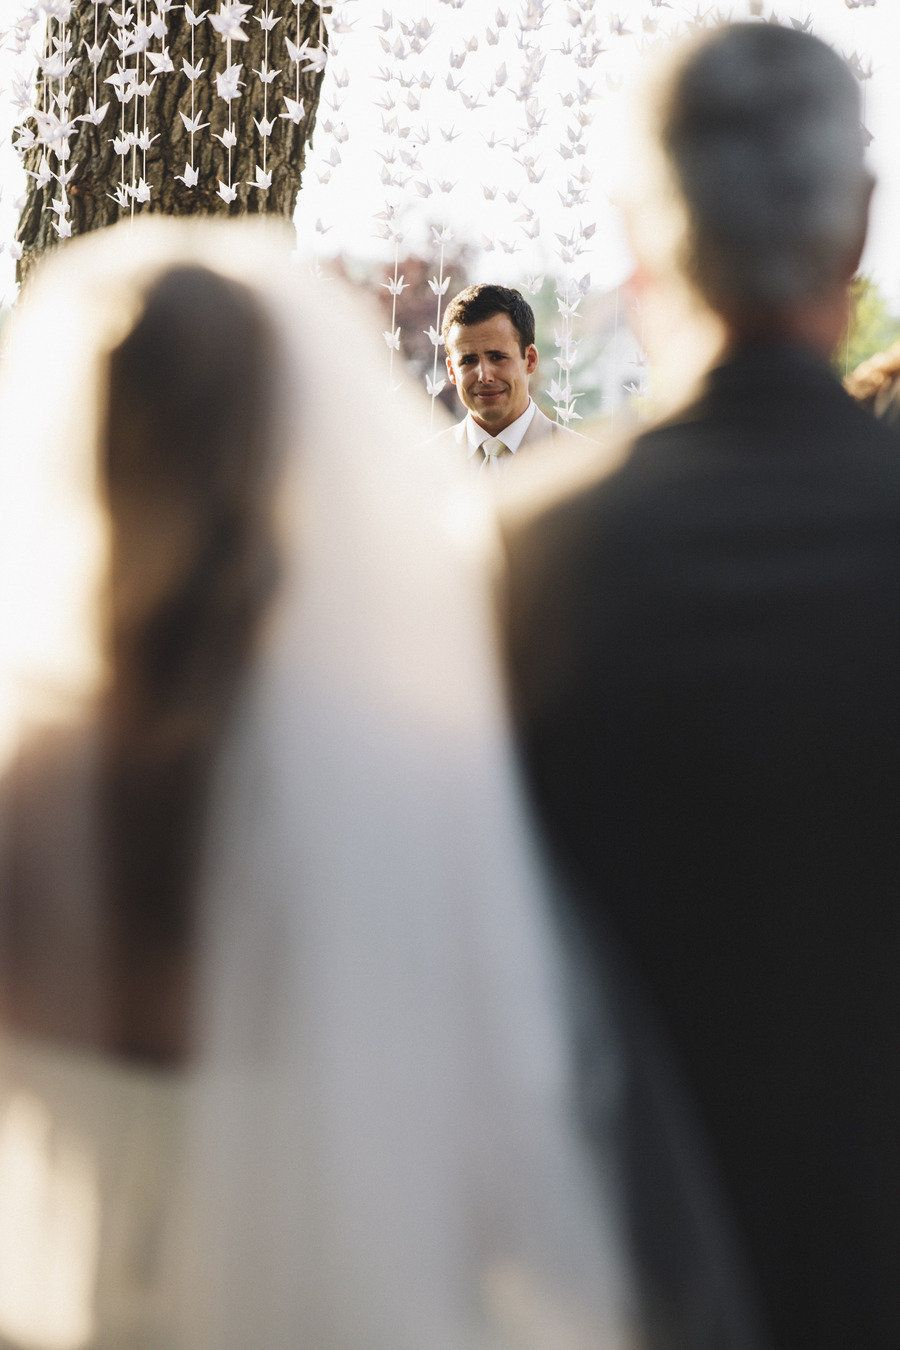 Picture of the groom from behind the bride as she walks down the aisle with her father